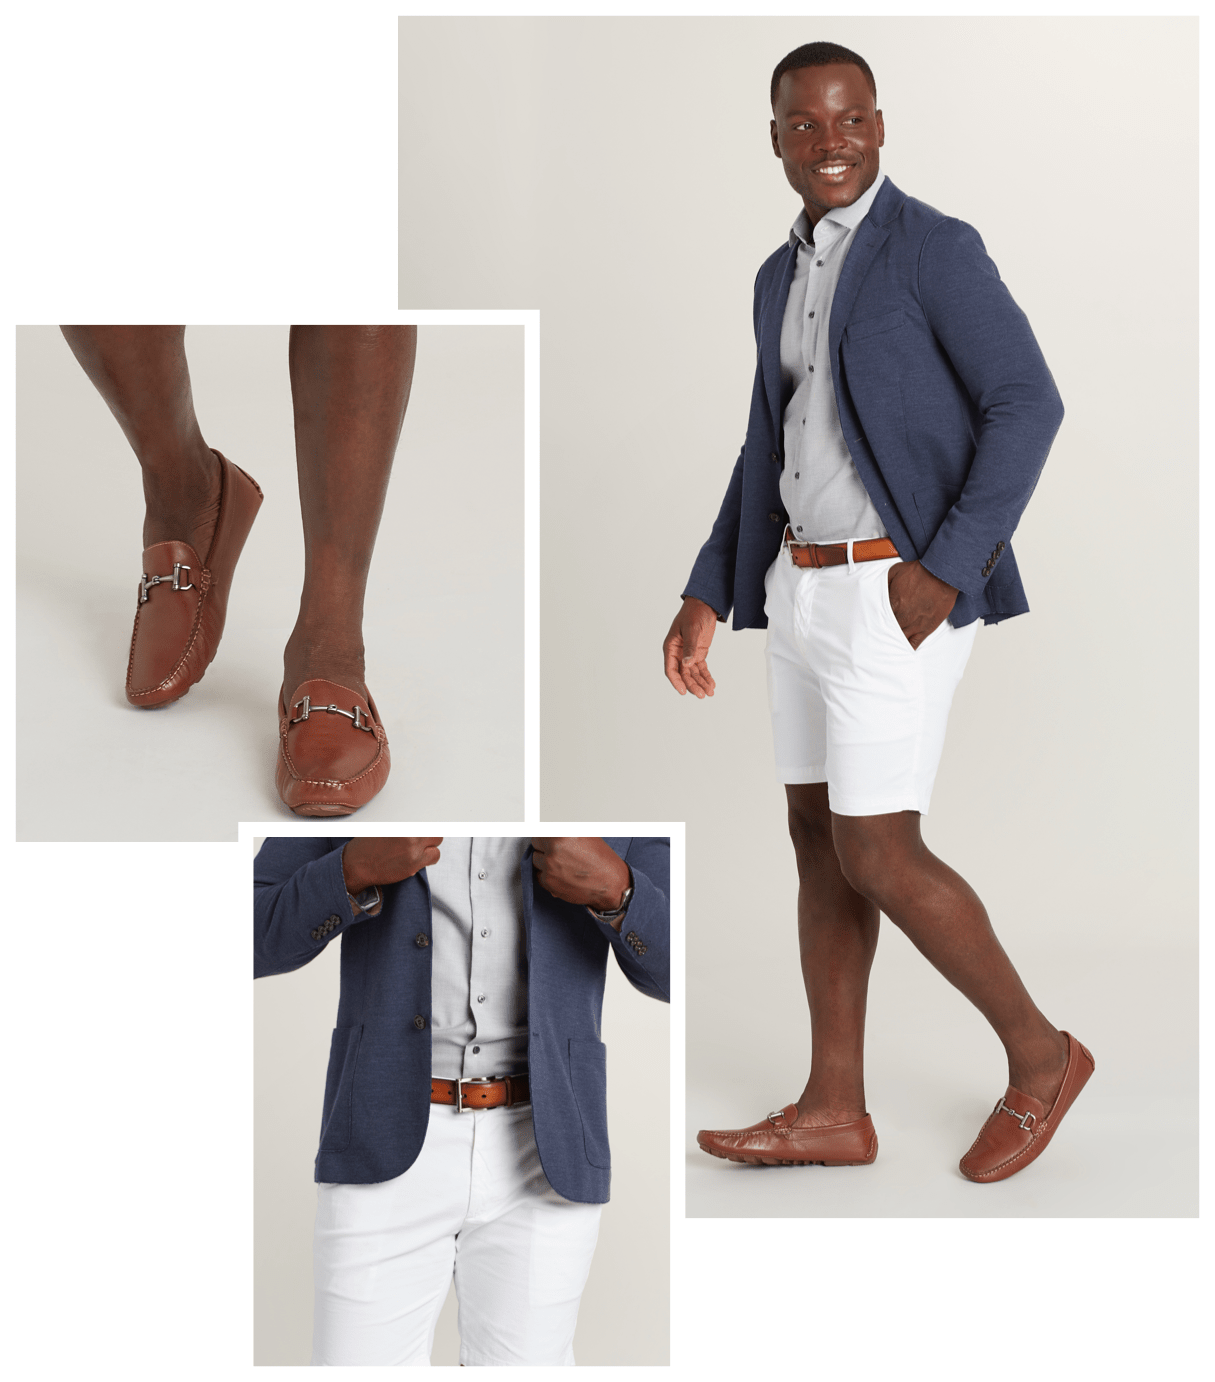 Date night outfit for men